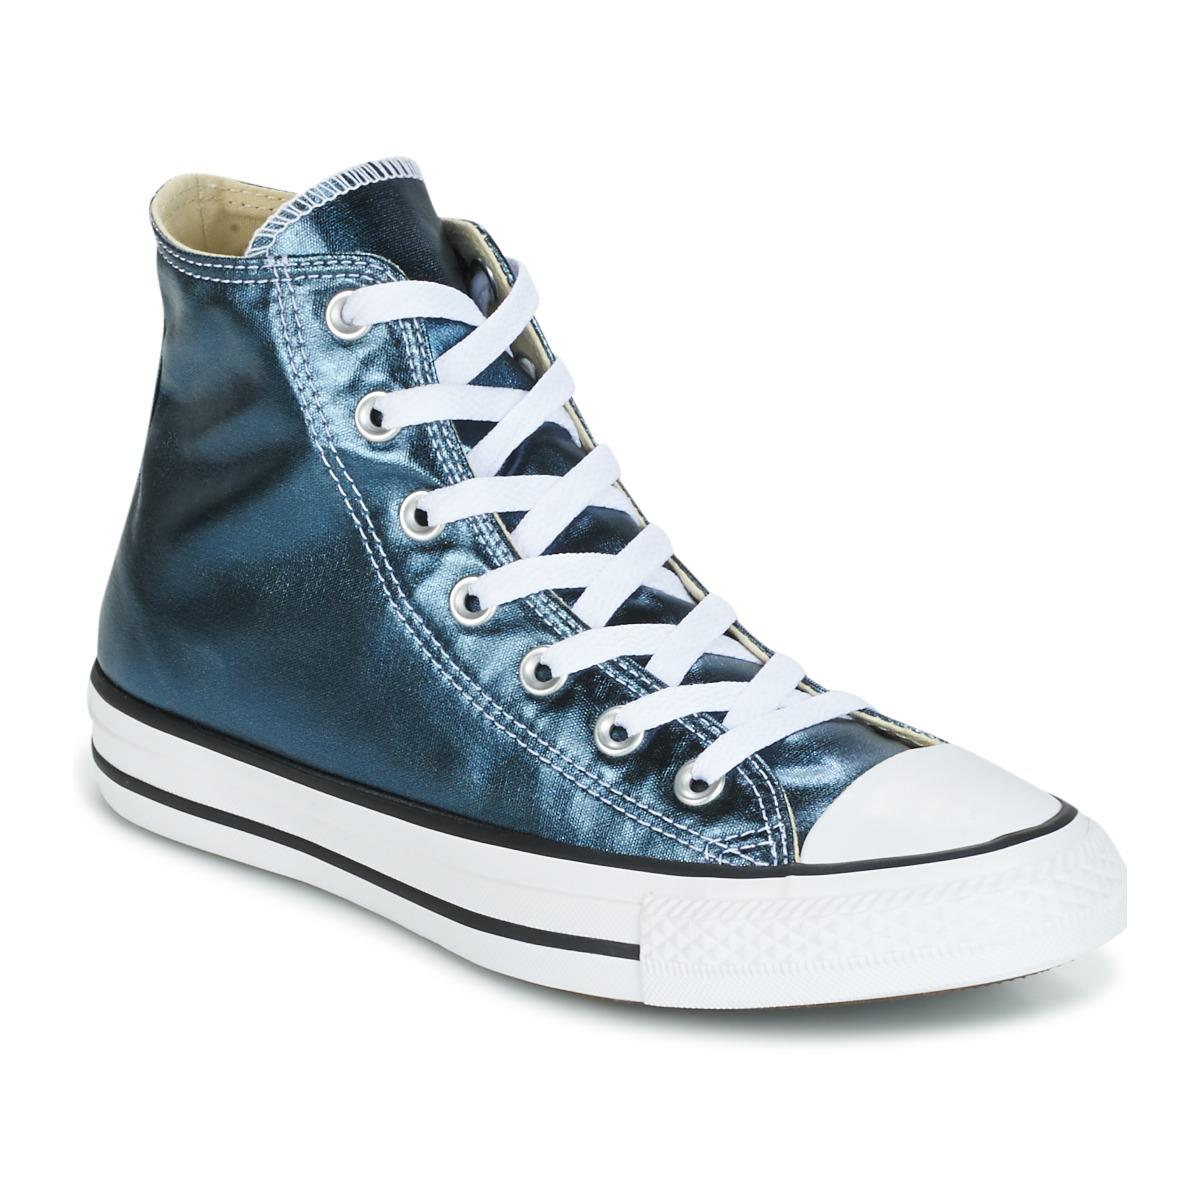 35f9657a1407 Converse Chuck Taylor All Star Metallic Canvas Hi Metallic Canvas Hi ...